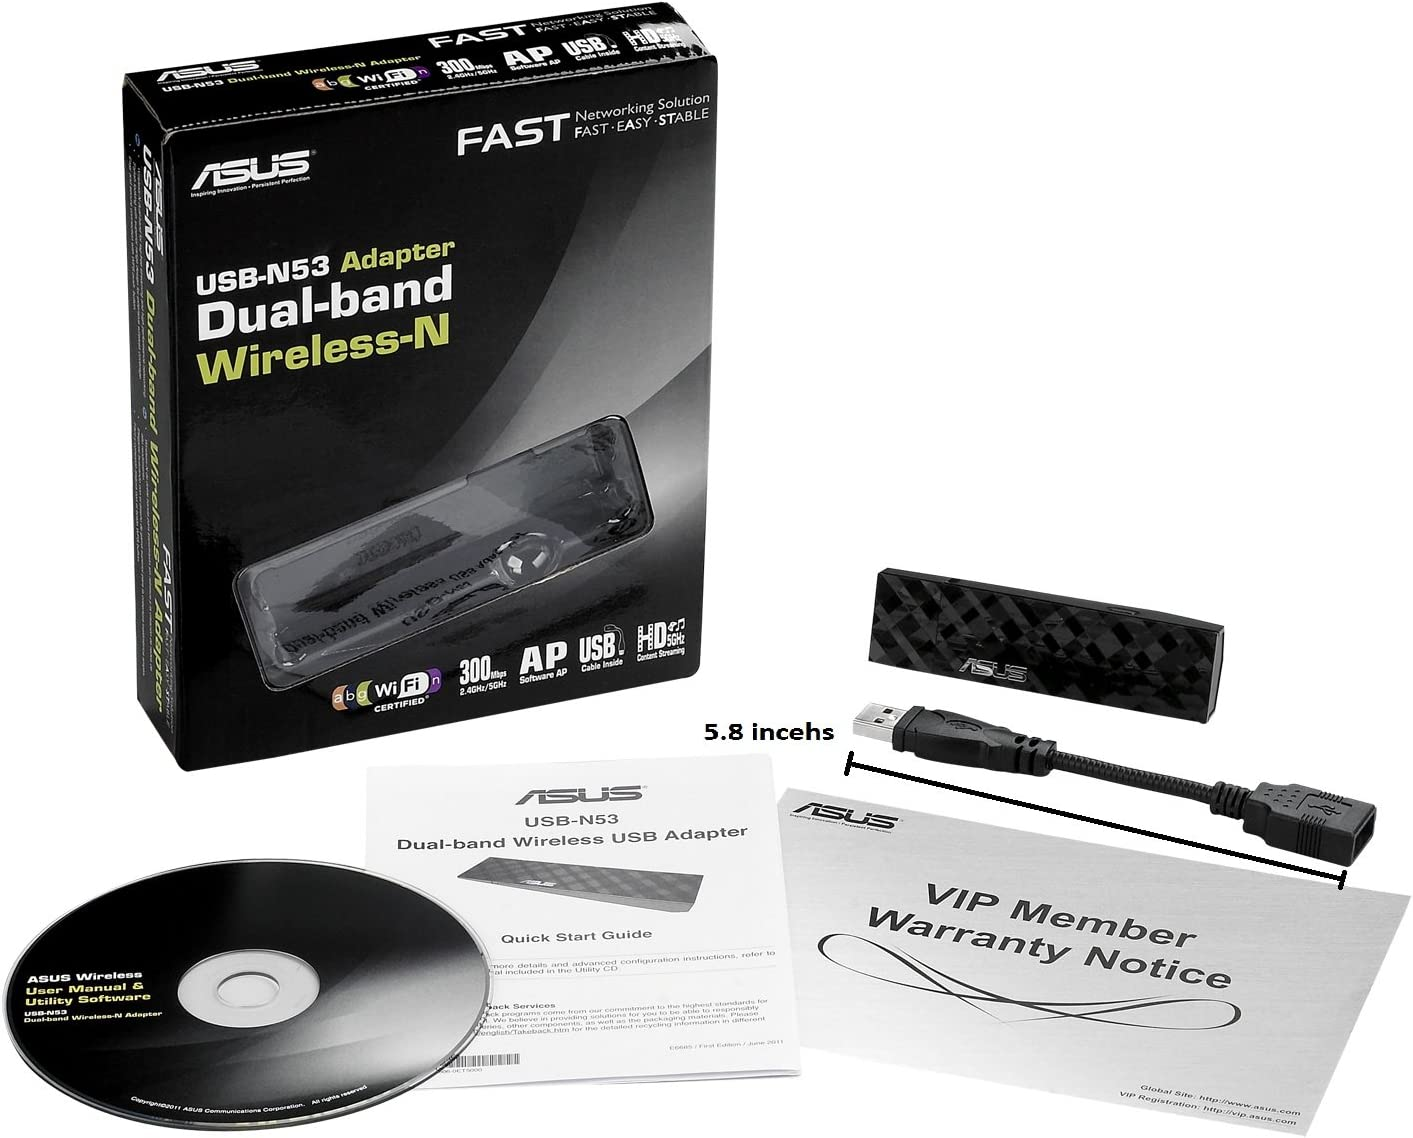 Wireless-N USB Adapter with Graphical Easy Interface USB-N53 2.4GHz 300Mbps//5GHz 300Mbps Asus Dual Band